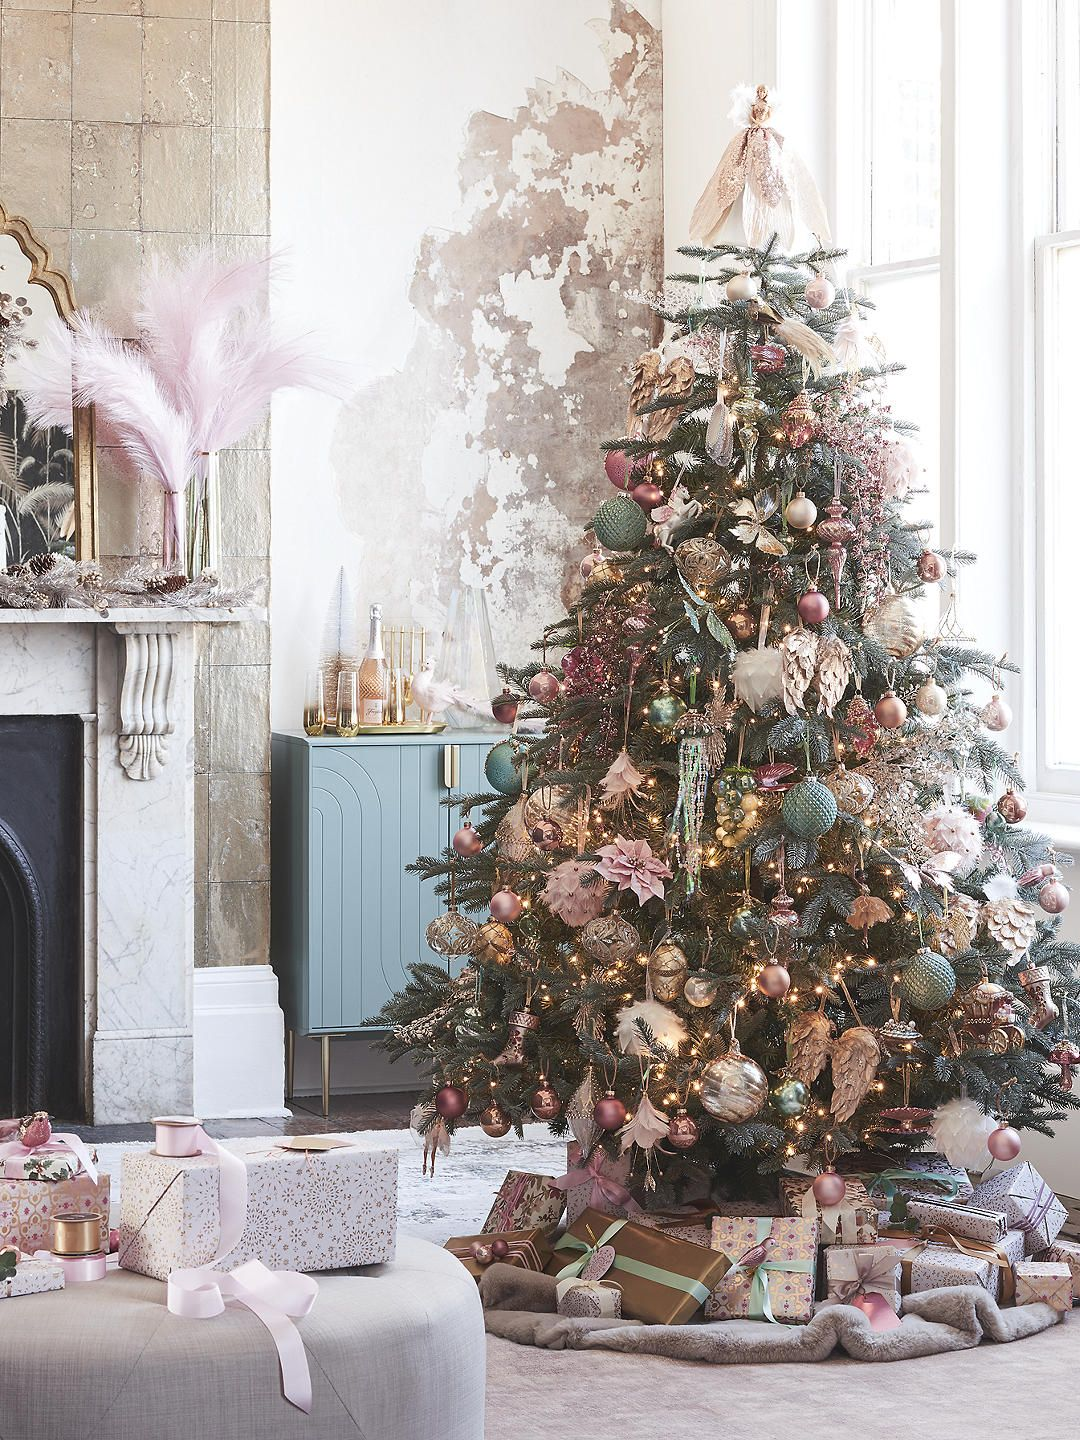 Christmas Tree Decorations The Best Picks For 2020